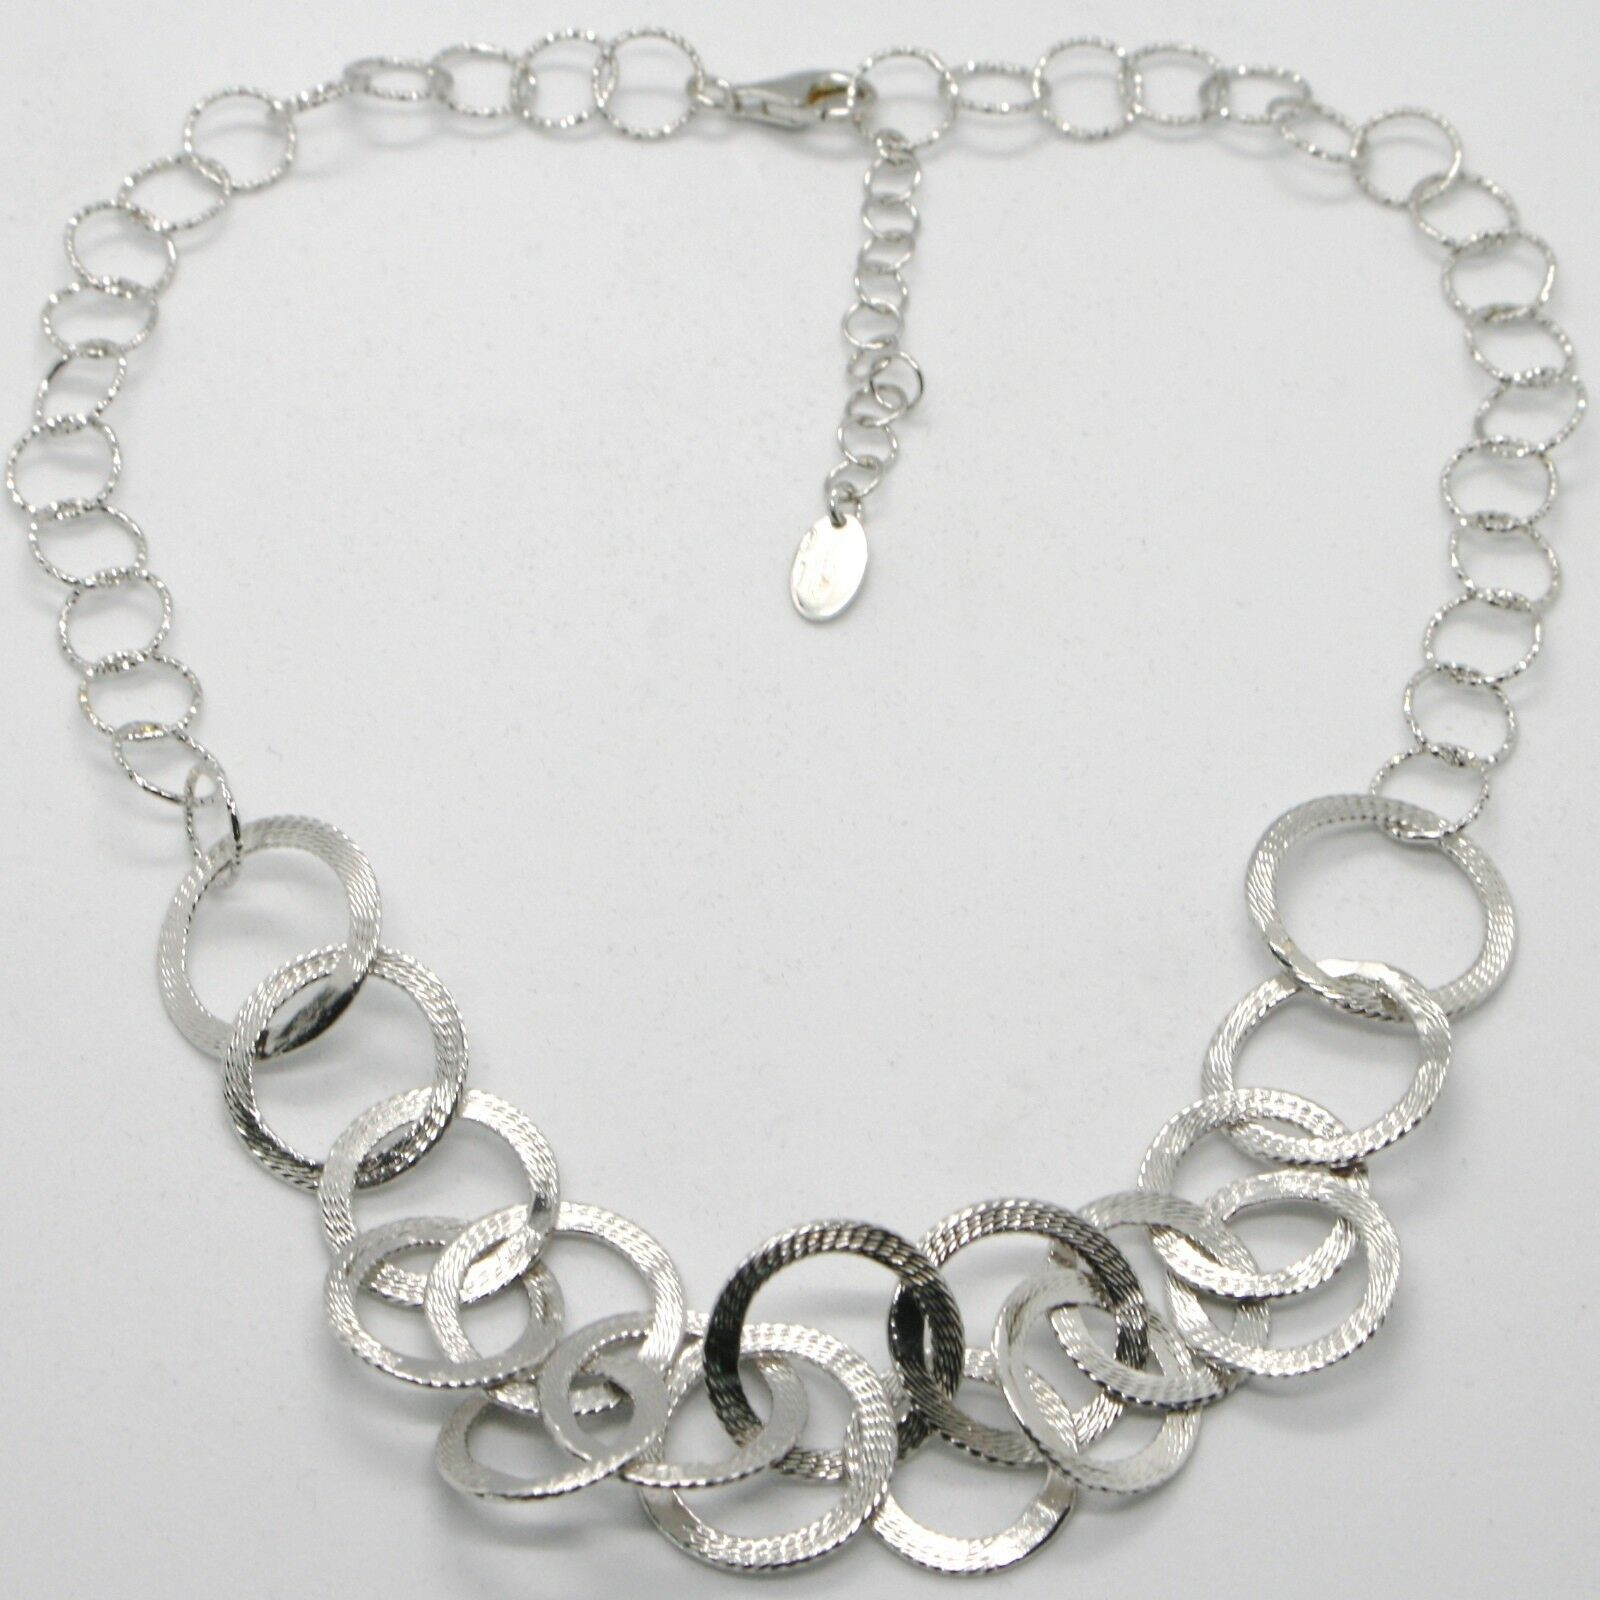 Choker Necklace Silver 925 with Circles Worked by Maria Ielpo , Made in Italy